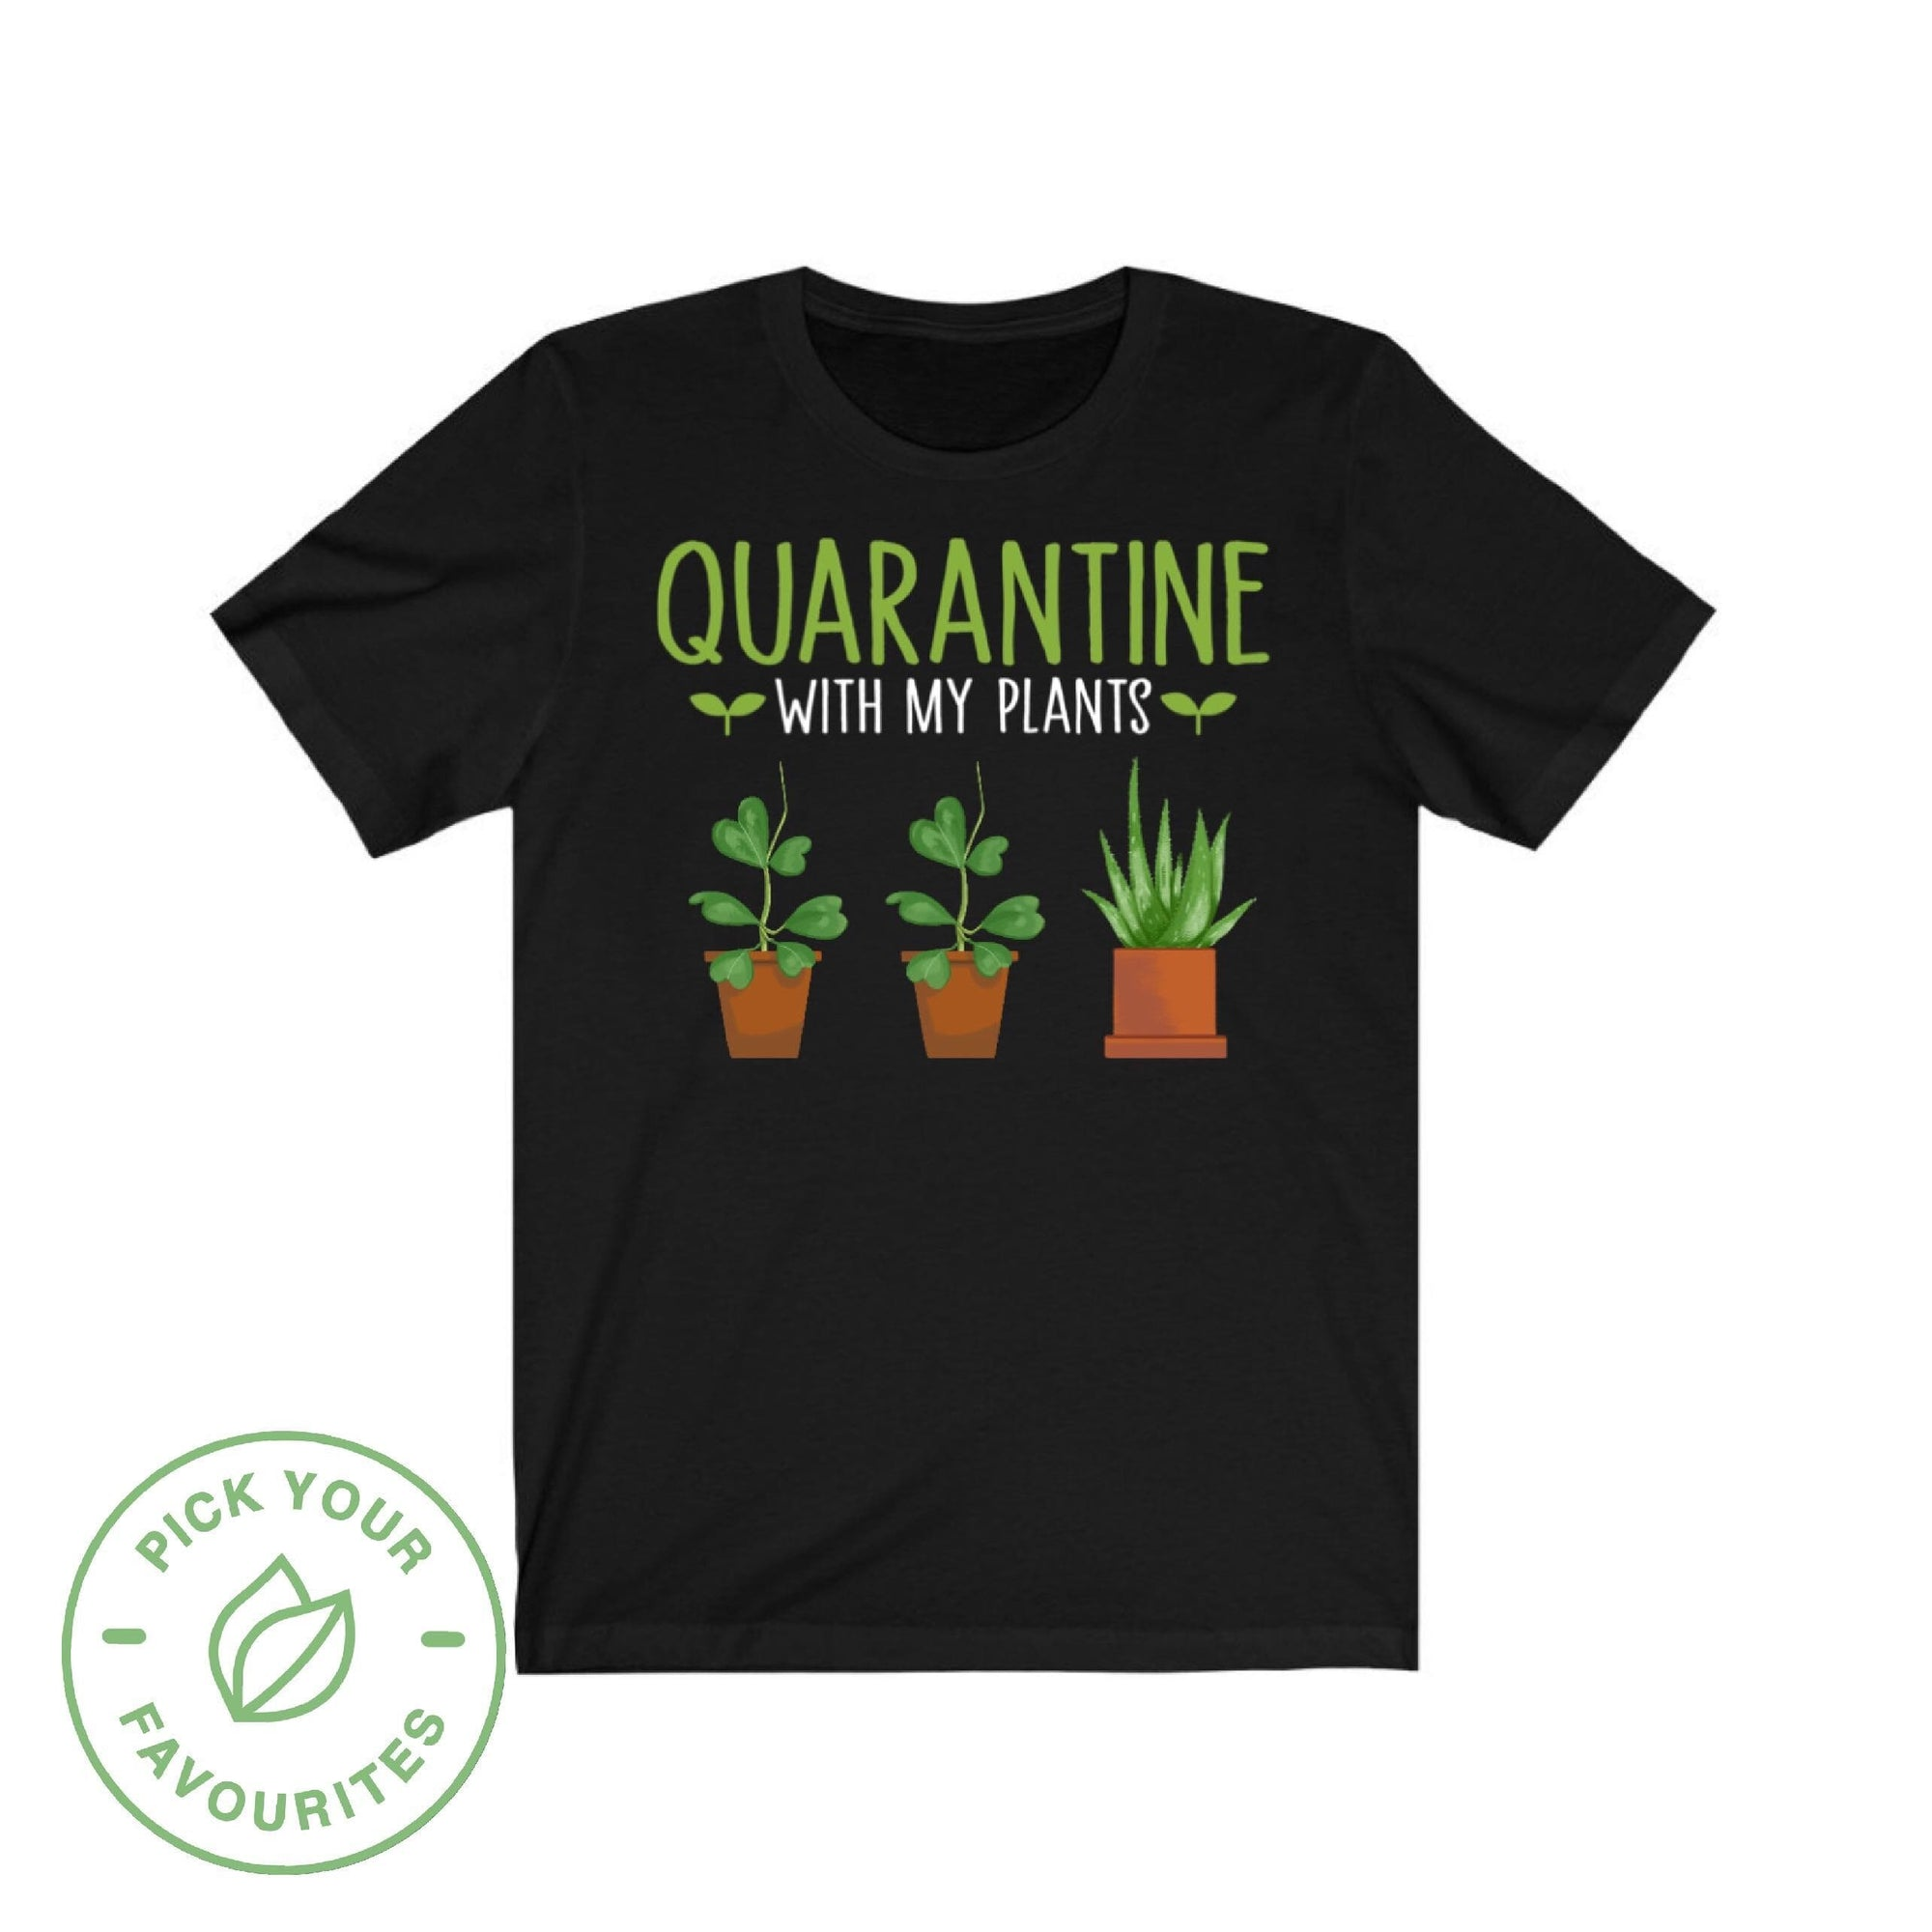 T-Shirt Quarantine With My Succulents - Personalized Tee Plantspree